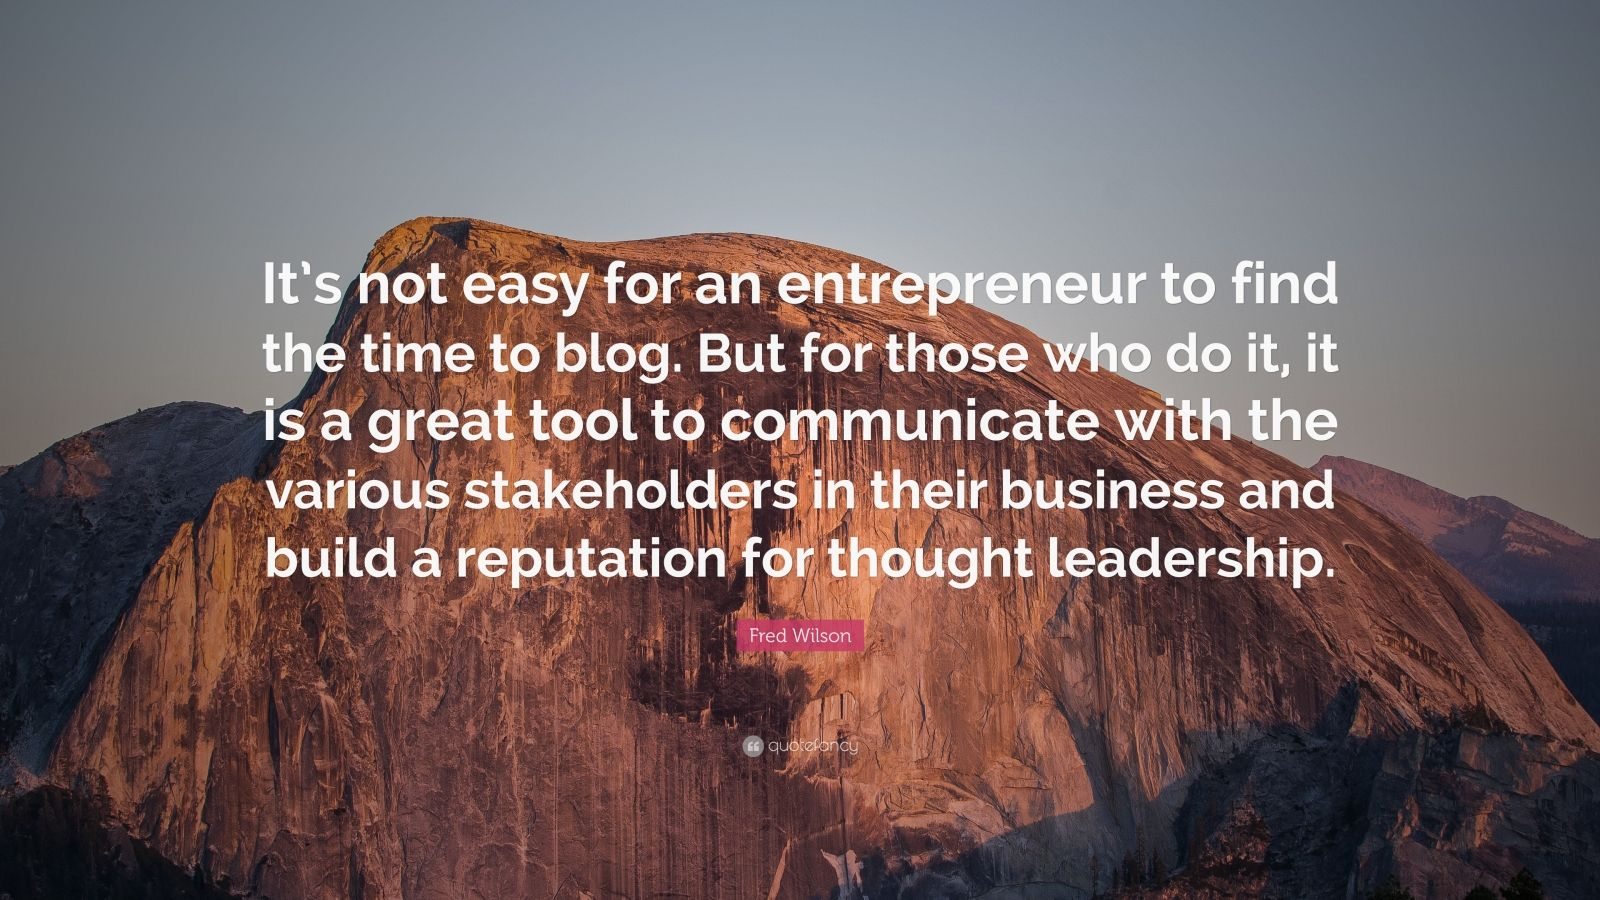 """Fred Wilson Quote: """"It's not easy for an entrepreneur to find the time to blog. But for those who do it, it is a great tool to communicate with the various stakeholders in their business and build a reputation for thought leadership."""""""